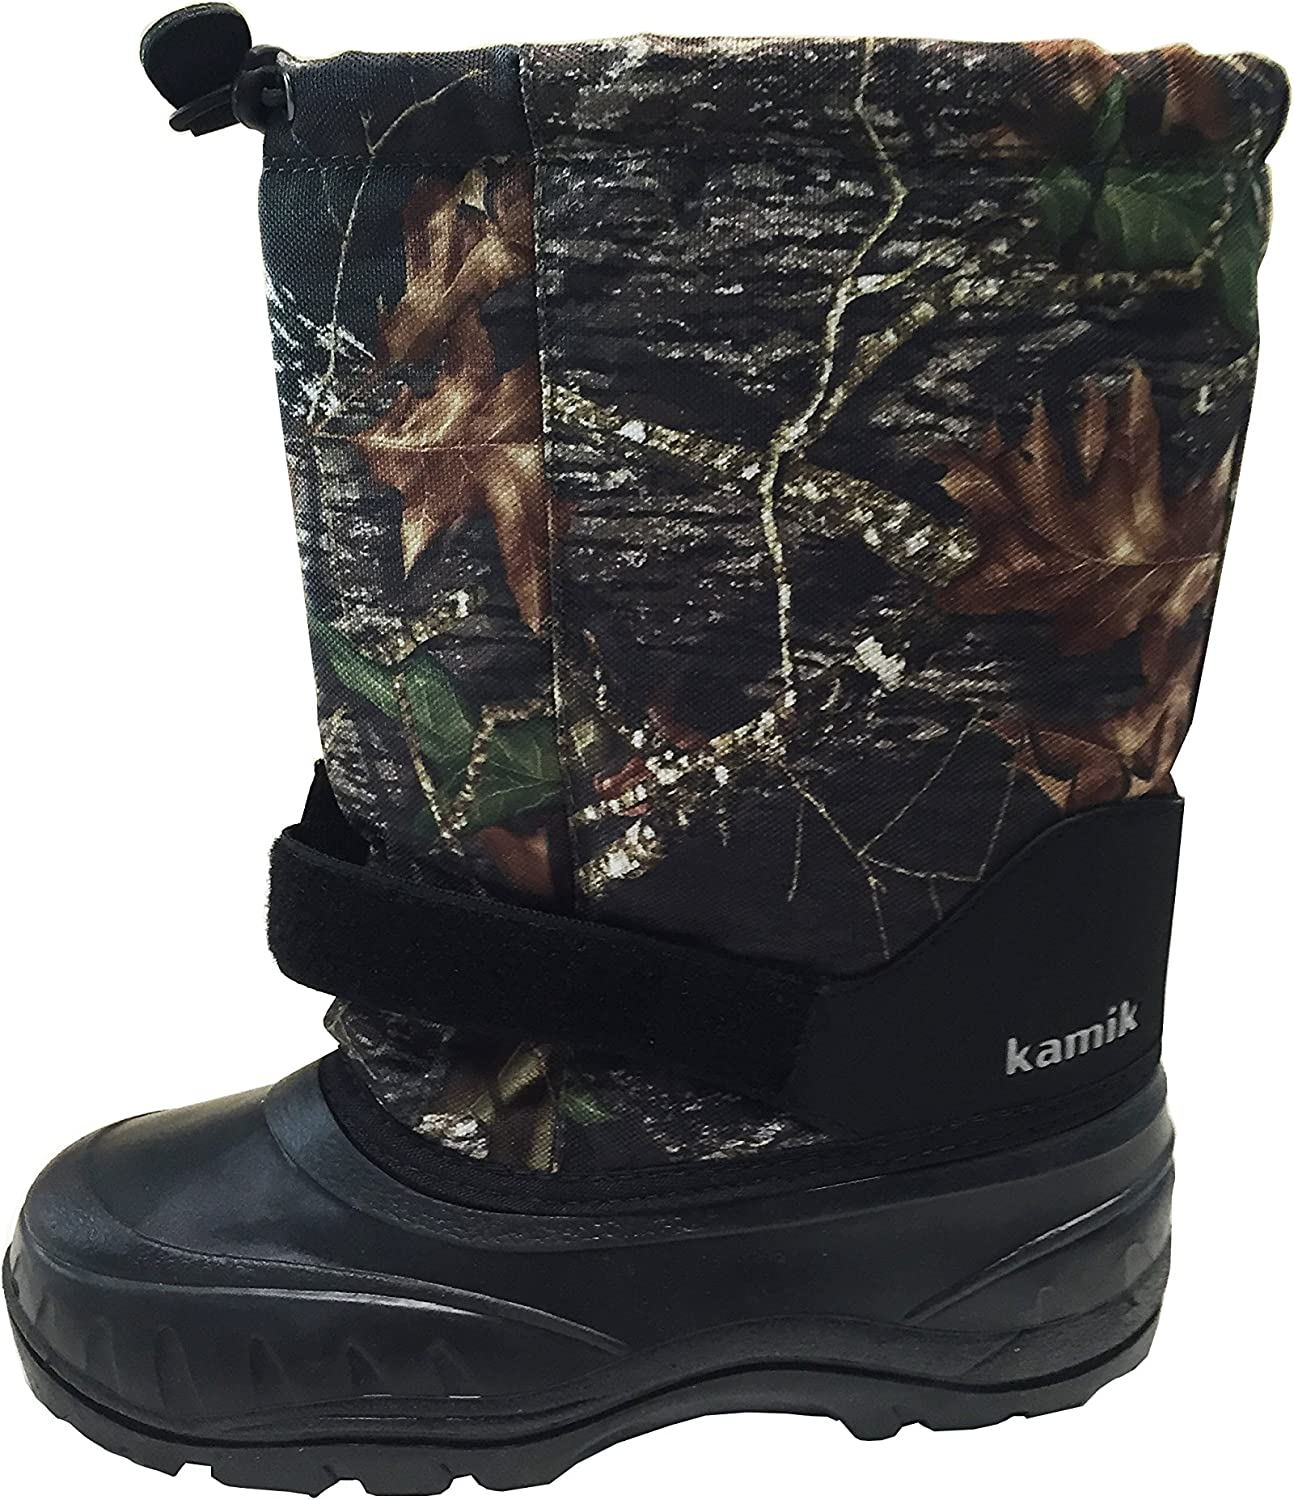 Kamik Frostfires Cold Weather Insulated Boots (Toddler/Little Kid/Big Kid) (8 M US Toddler)